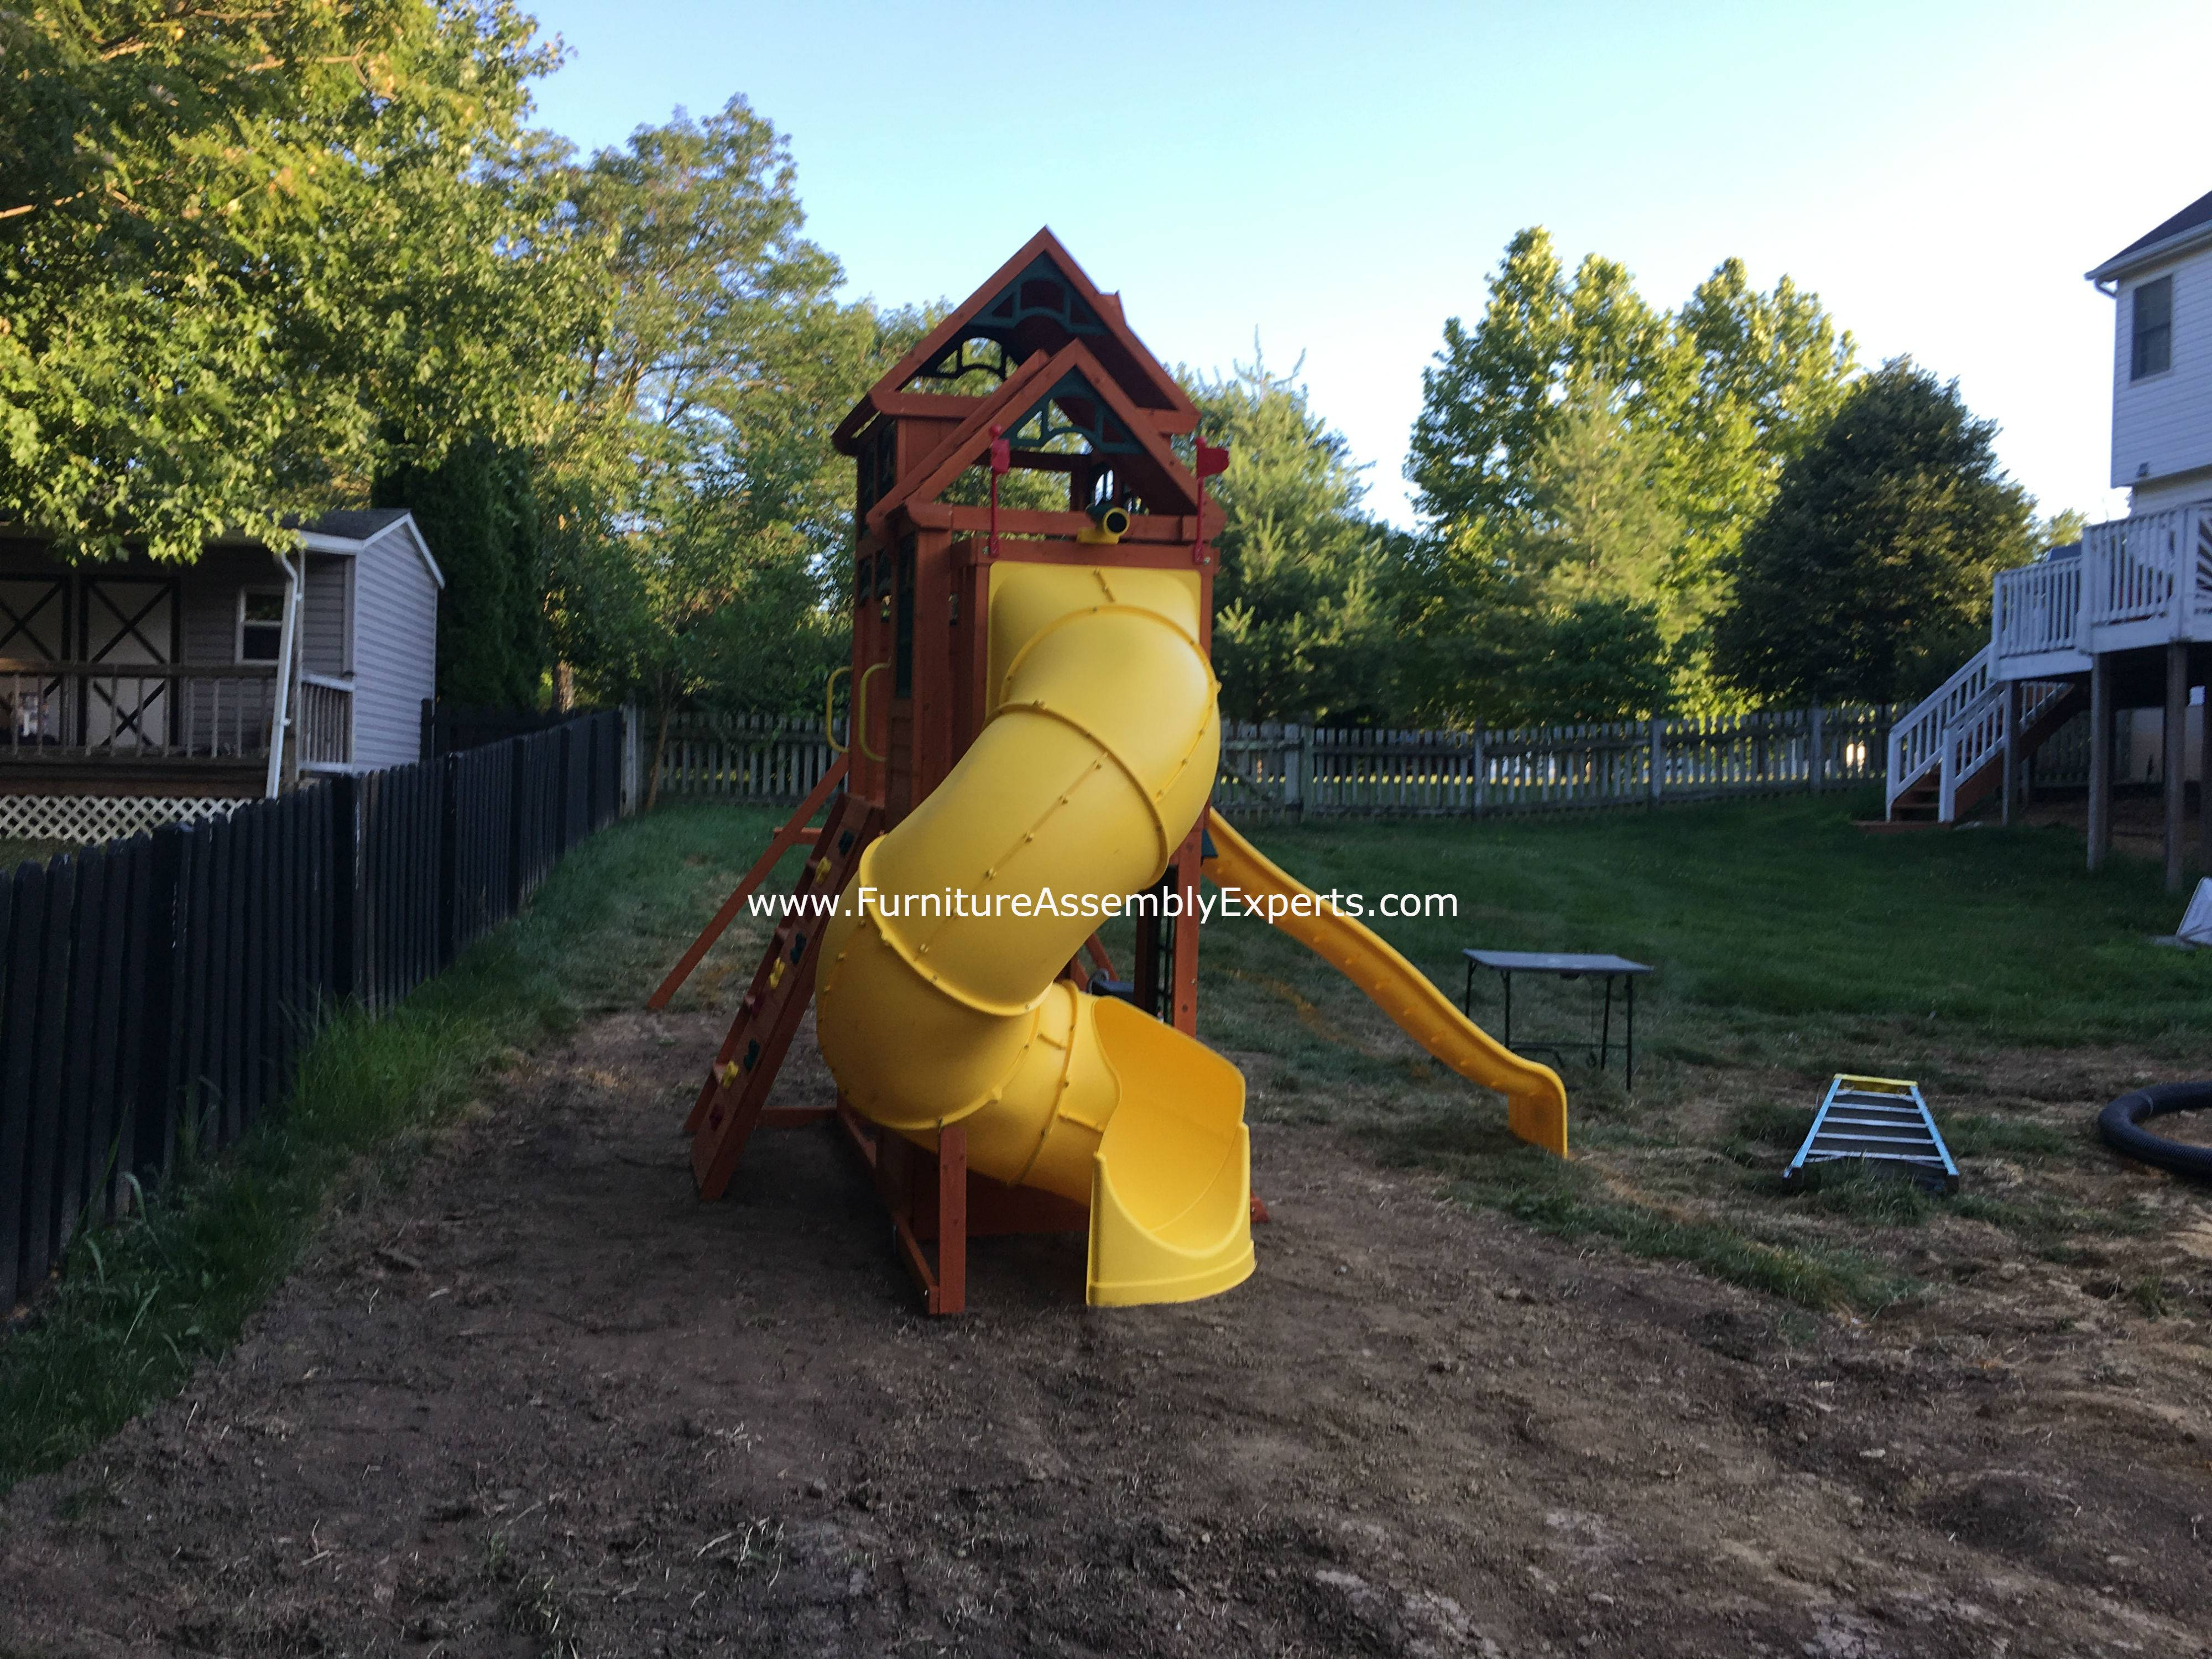 Cedar summit canyon ridge swing set assembly service in bowie MD